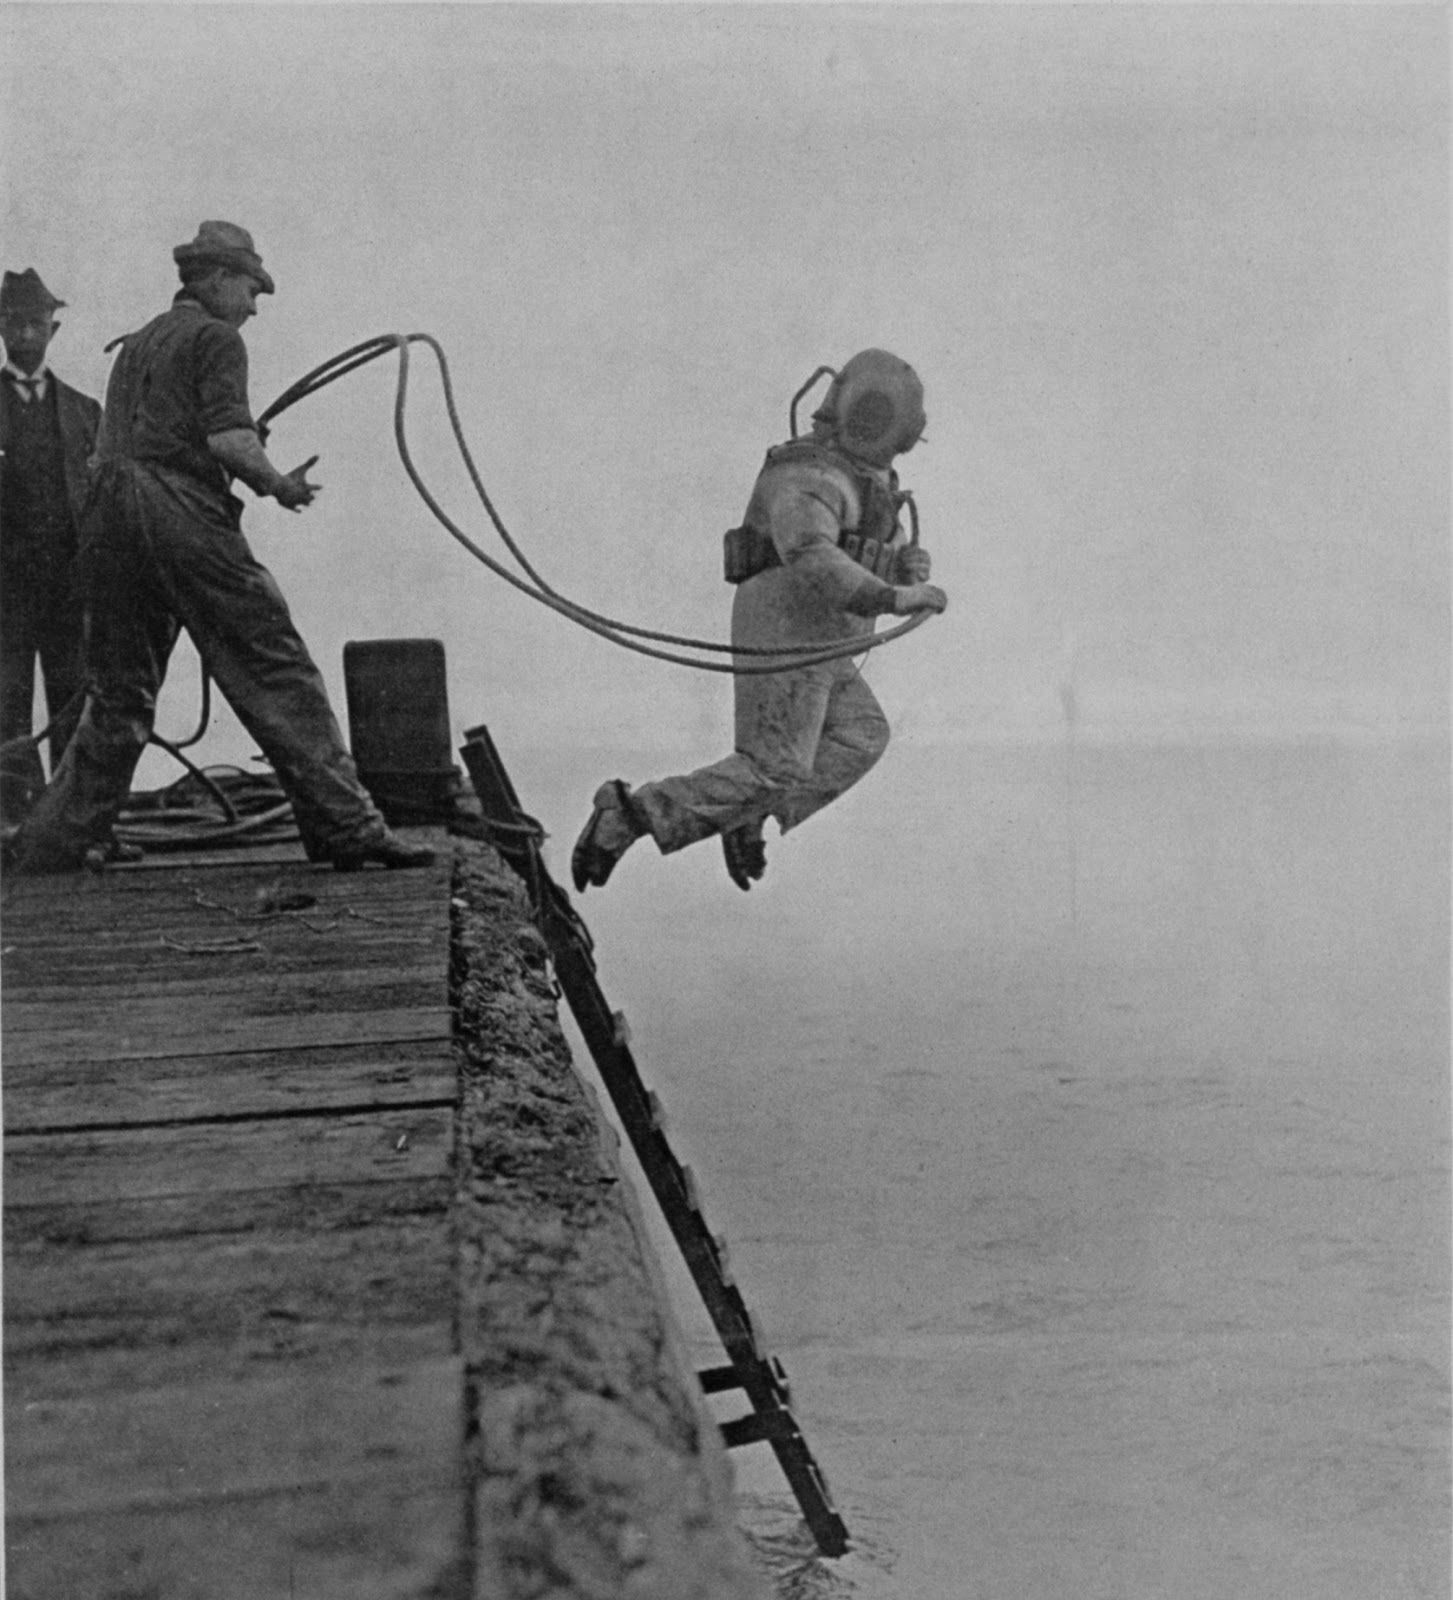 36 Amazing Historical Pictures. #9 Is Unbelievable - A deep sea diver is captured mid-jump. The cover of Scientific American Supplement on October 23, 1915